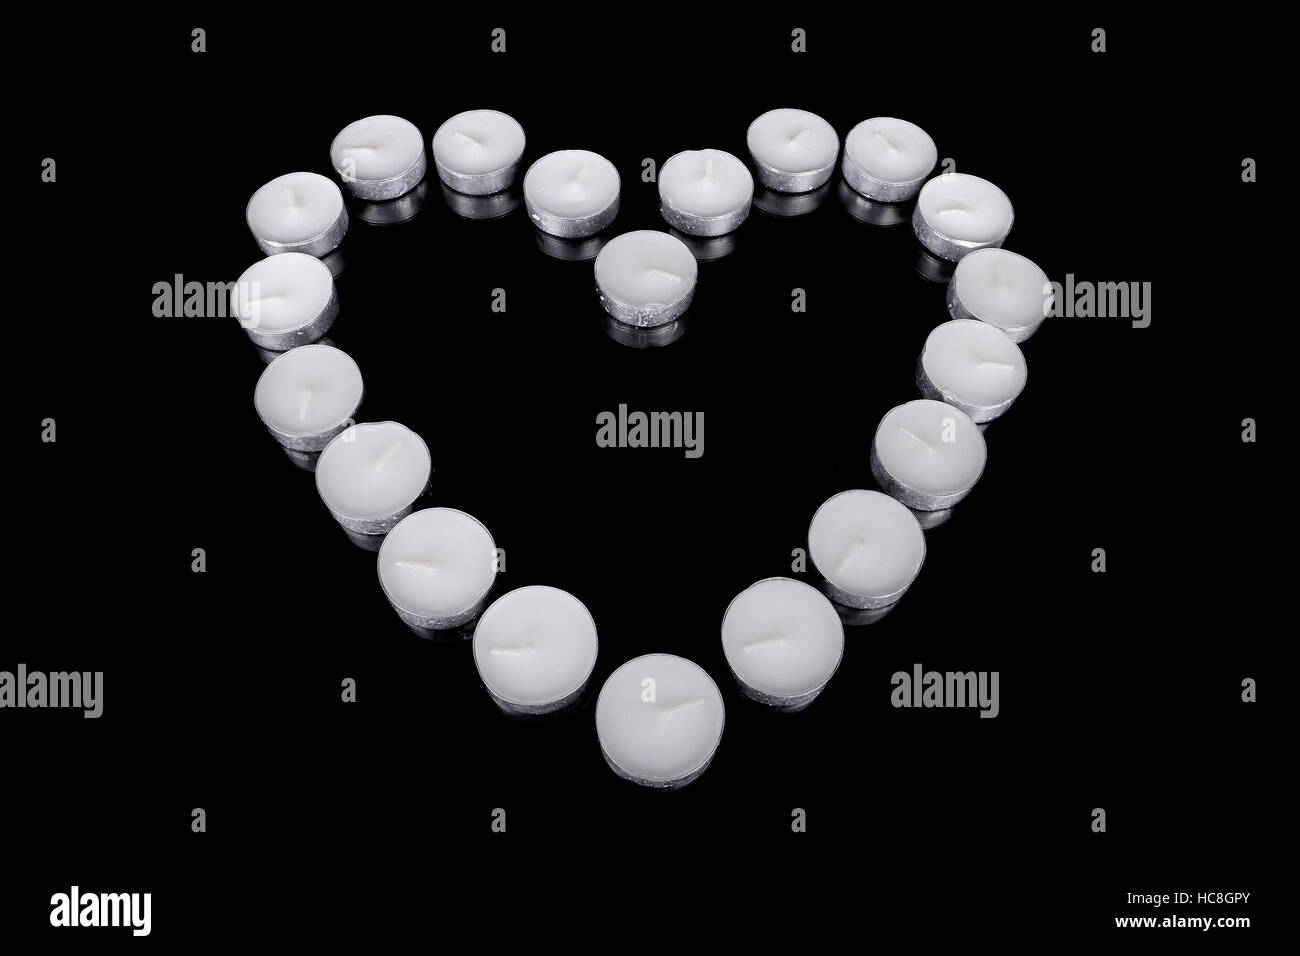 Group of white candles forming a heart  on black isolated background. Concept for St. Valentine - Stock Image